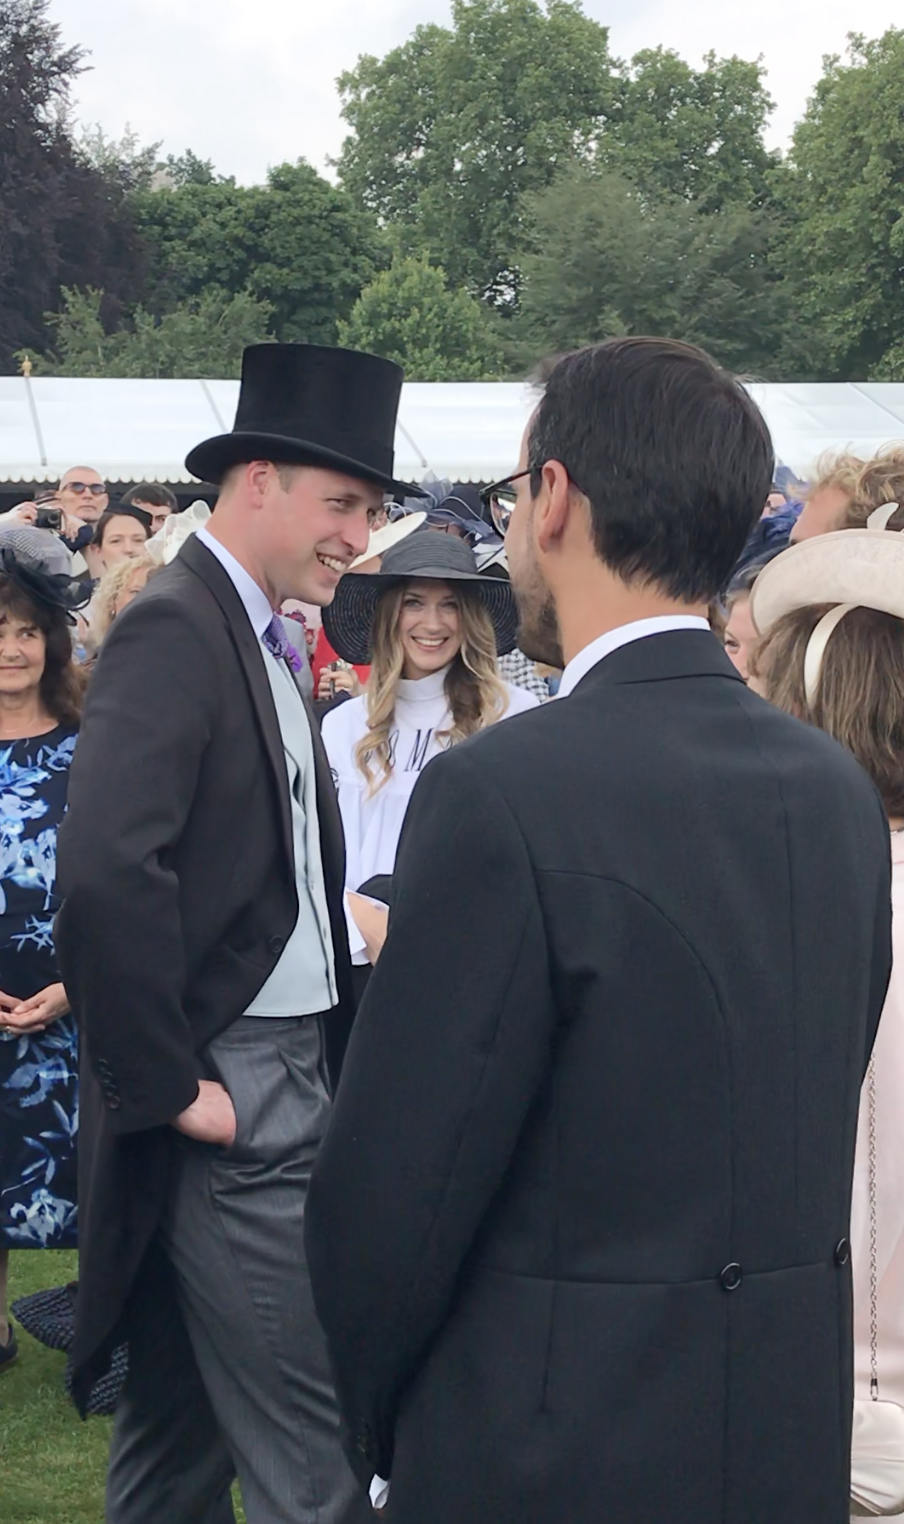 Prince William mingling at Queen's Garden Party